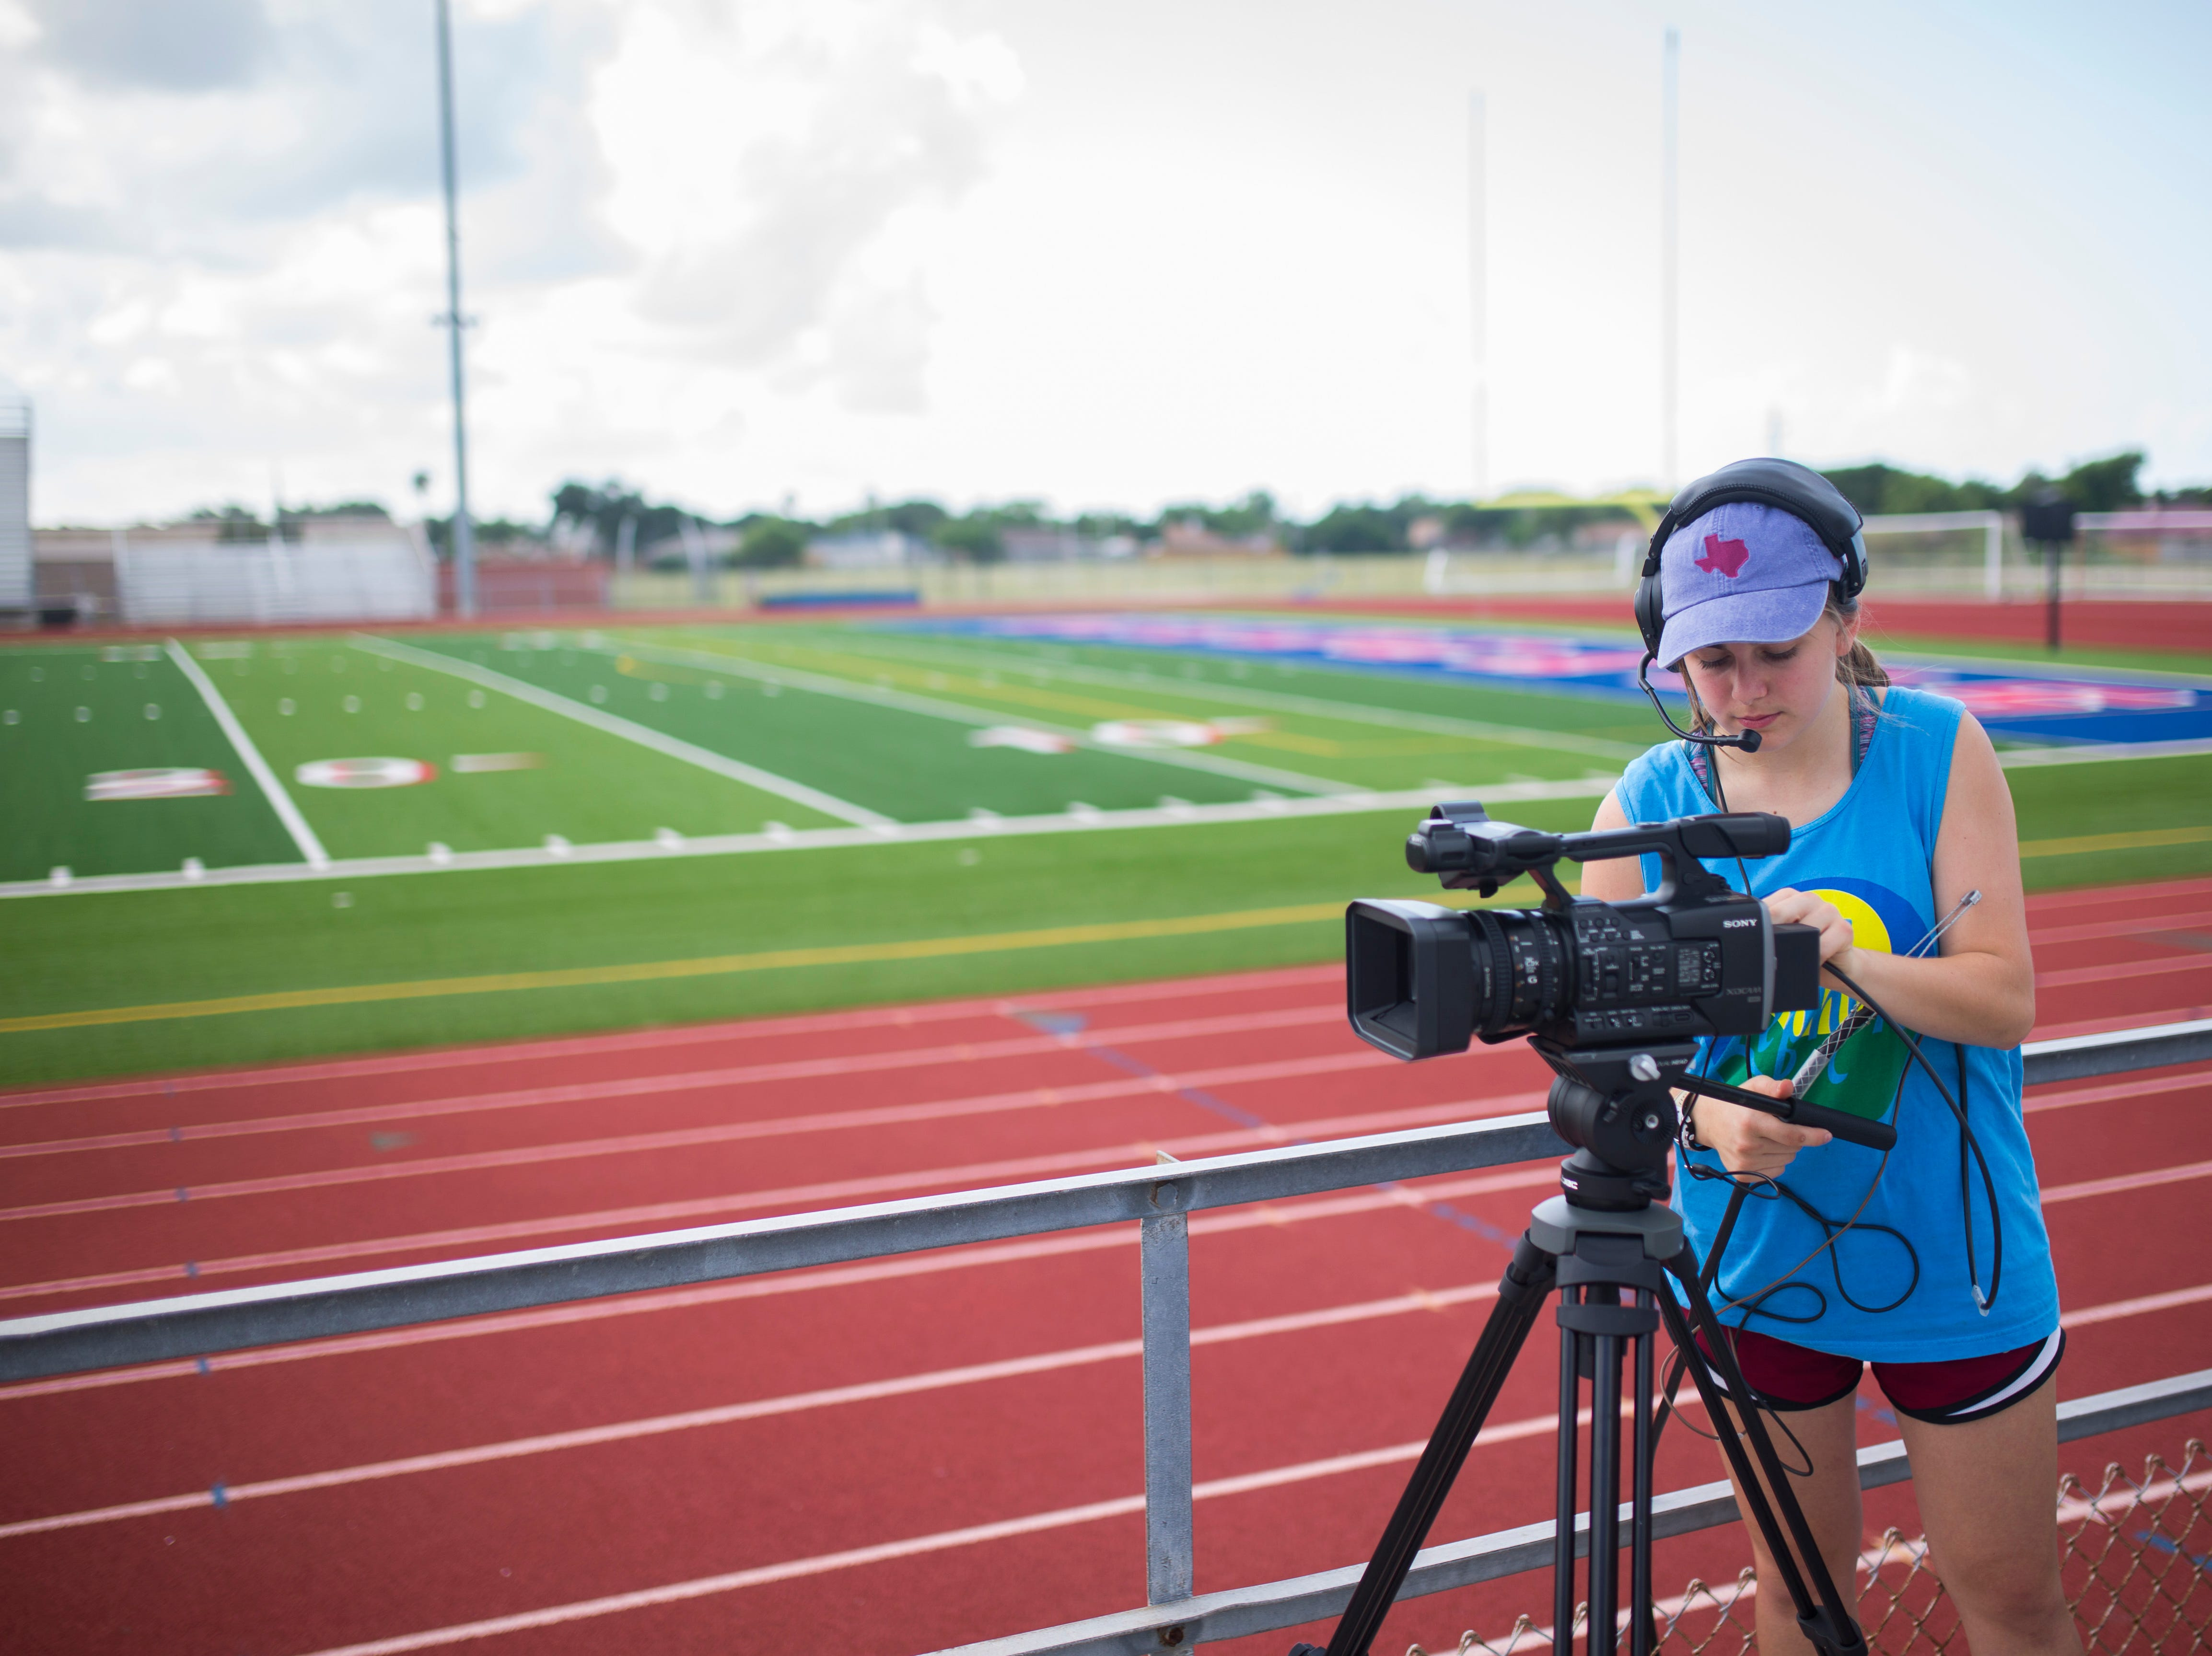 Gregory-Portland Kara DeGaish works with video camera for the upcoming football season, Friday August 3, 2018, at Ray Akins Wildcat Stadium.